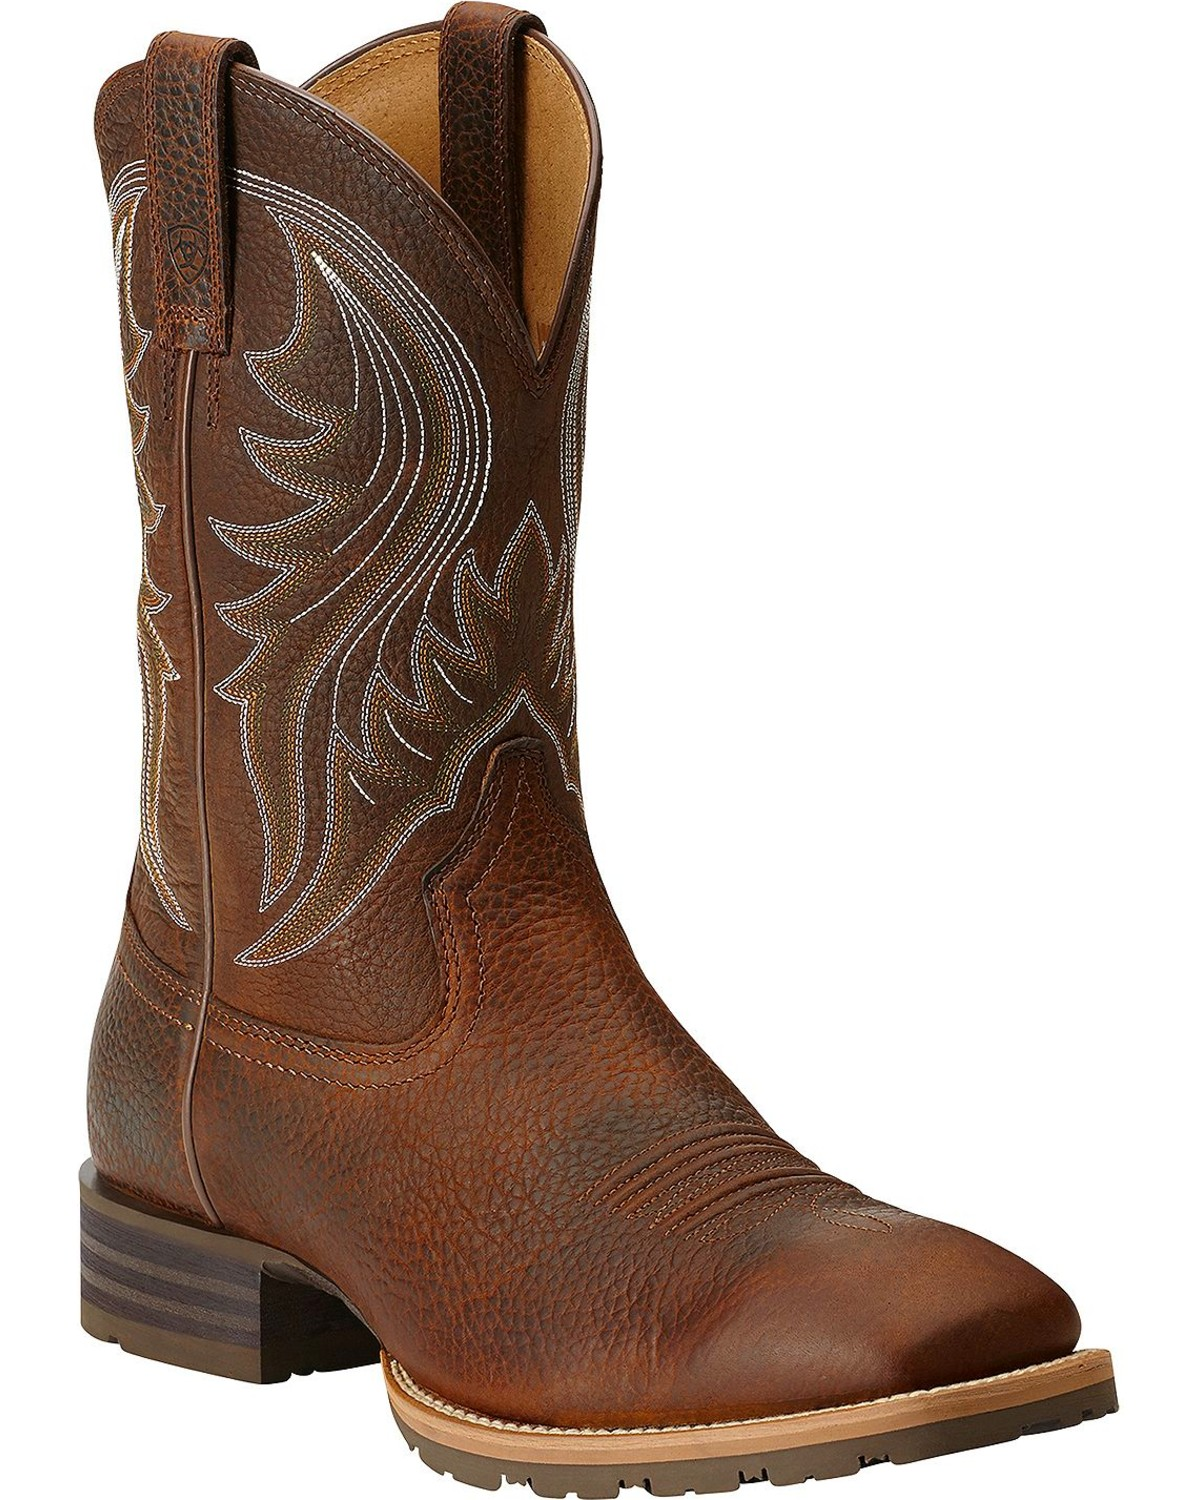 Ariat Hybrid Rancher Cowboy Boots Square Toe Country